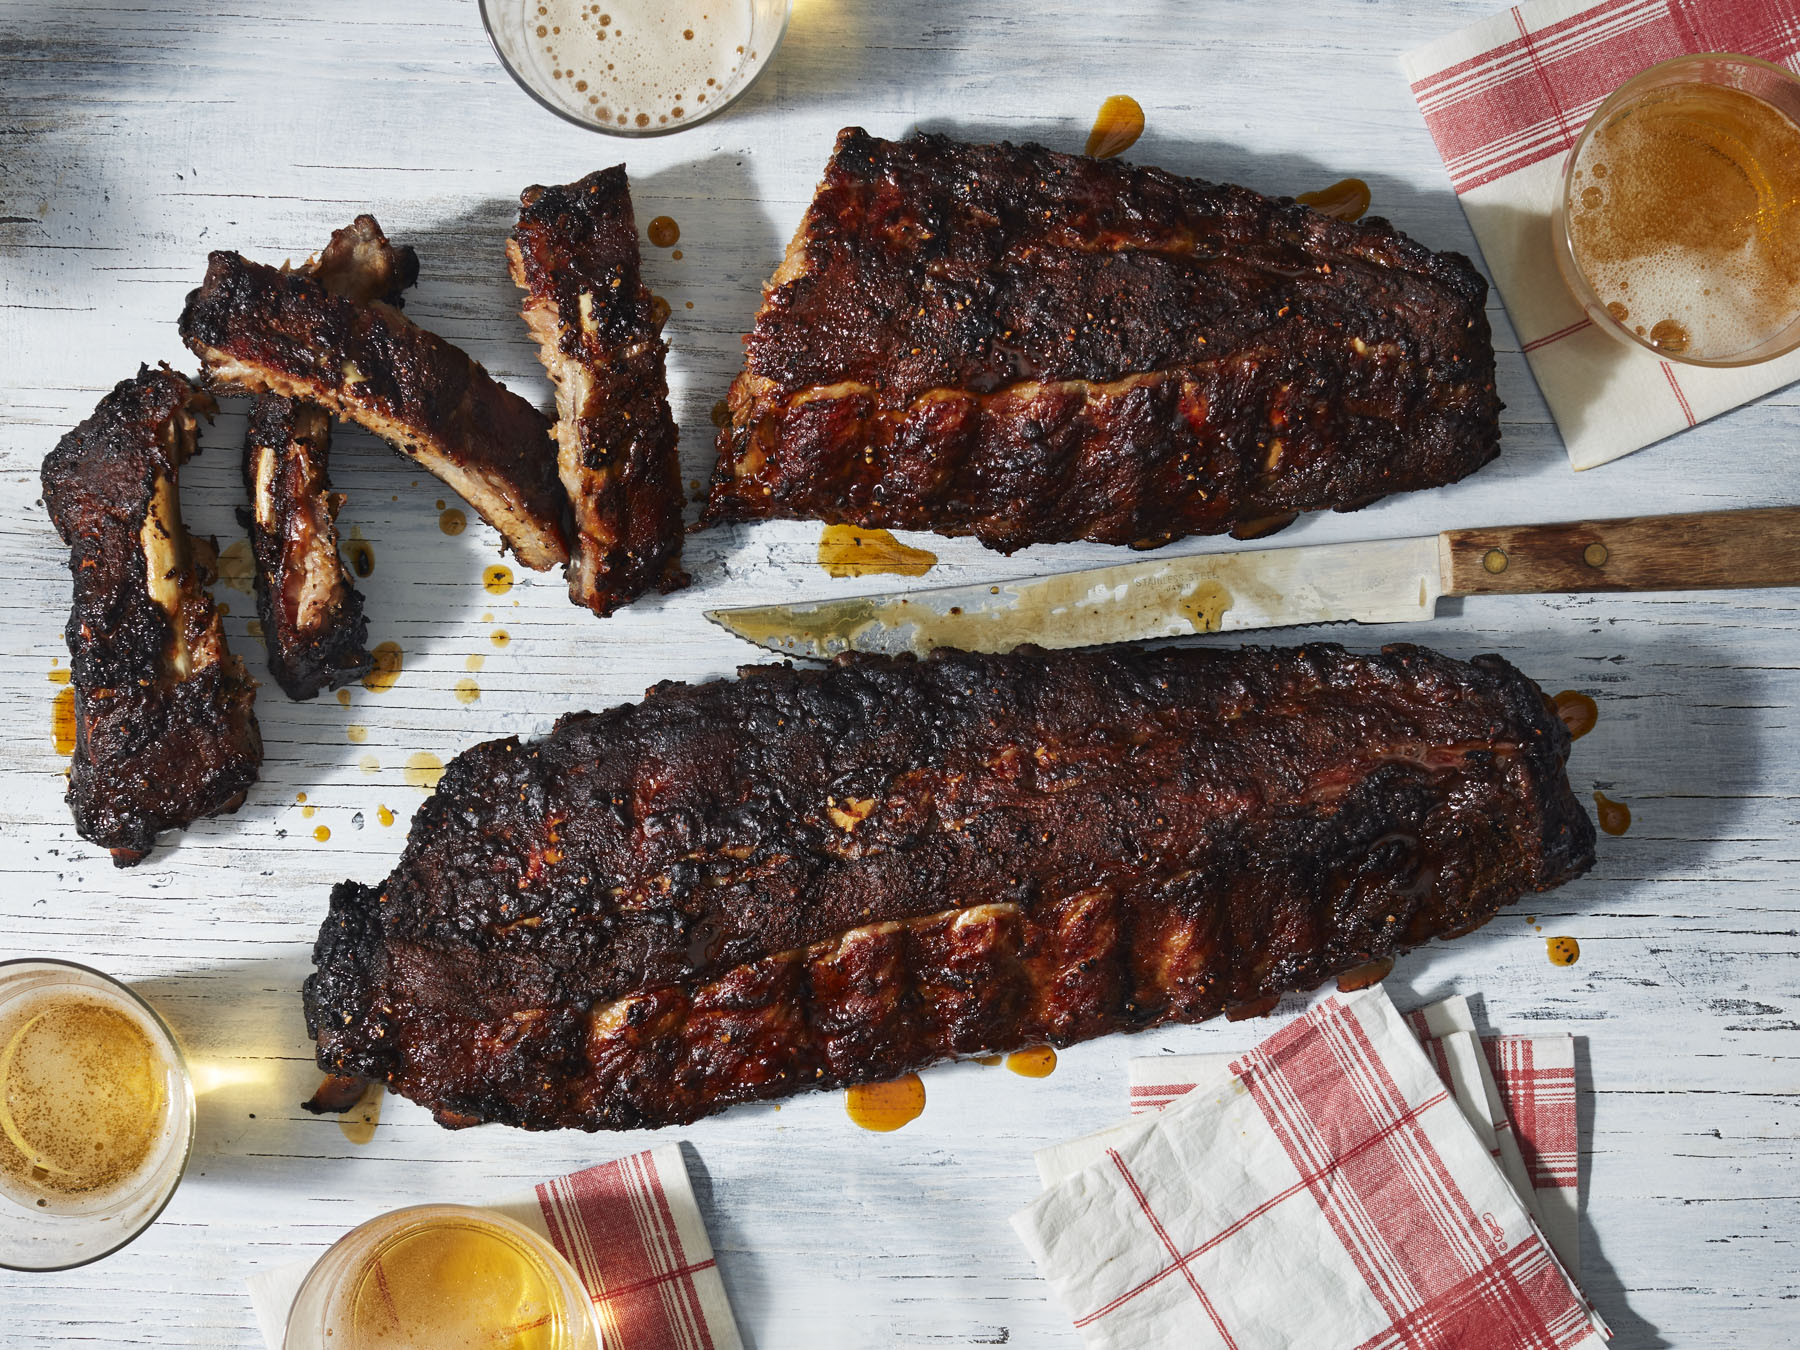 Recipes for fragrant meat glaze for those who have no time to mess with marinade